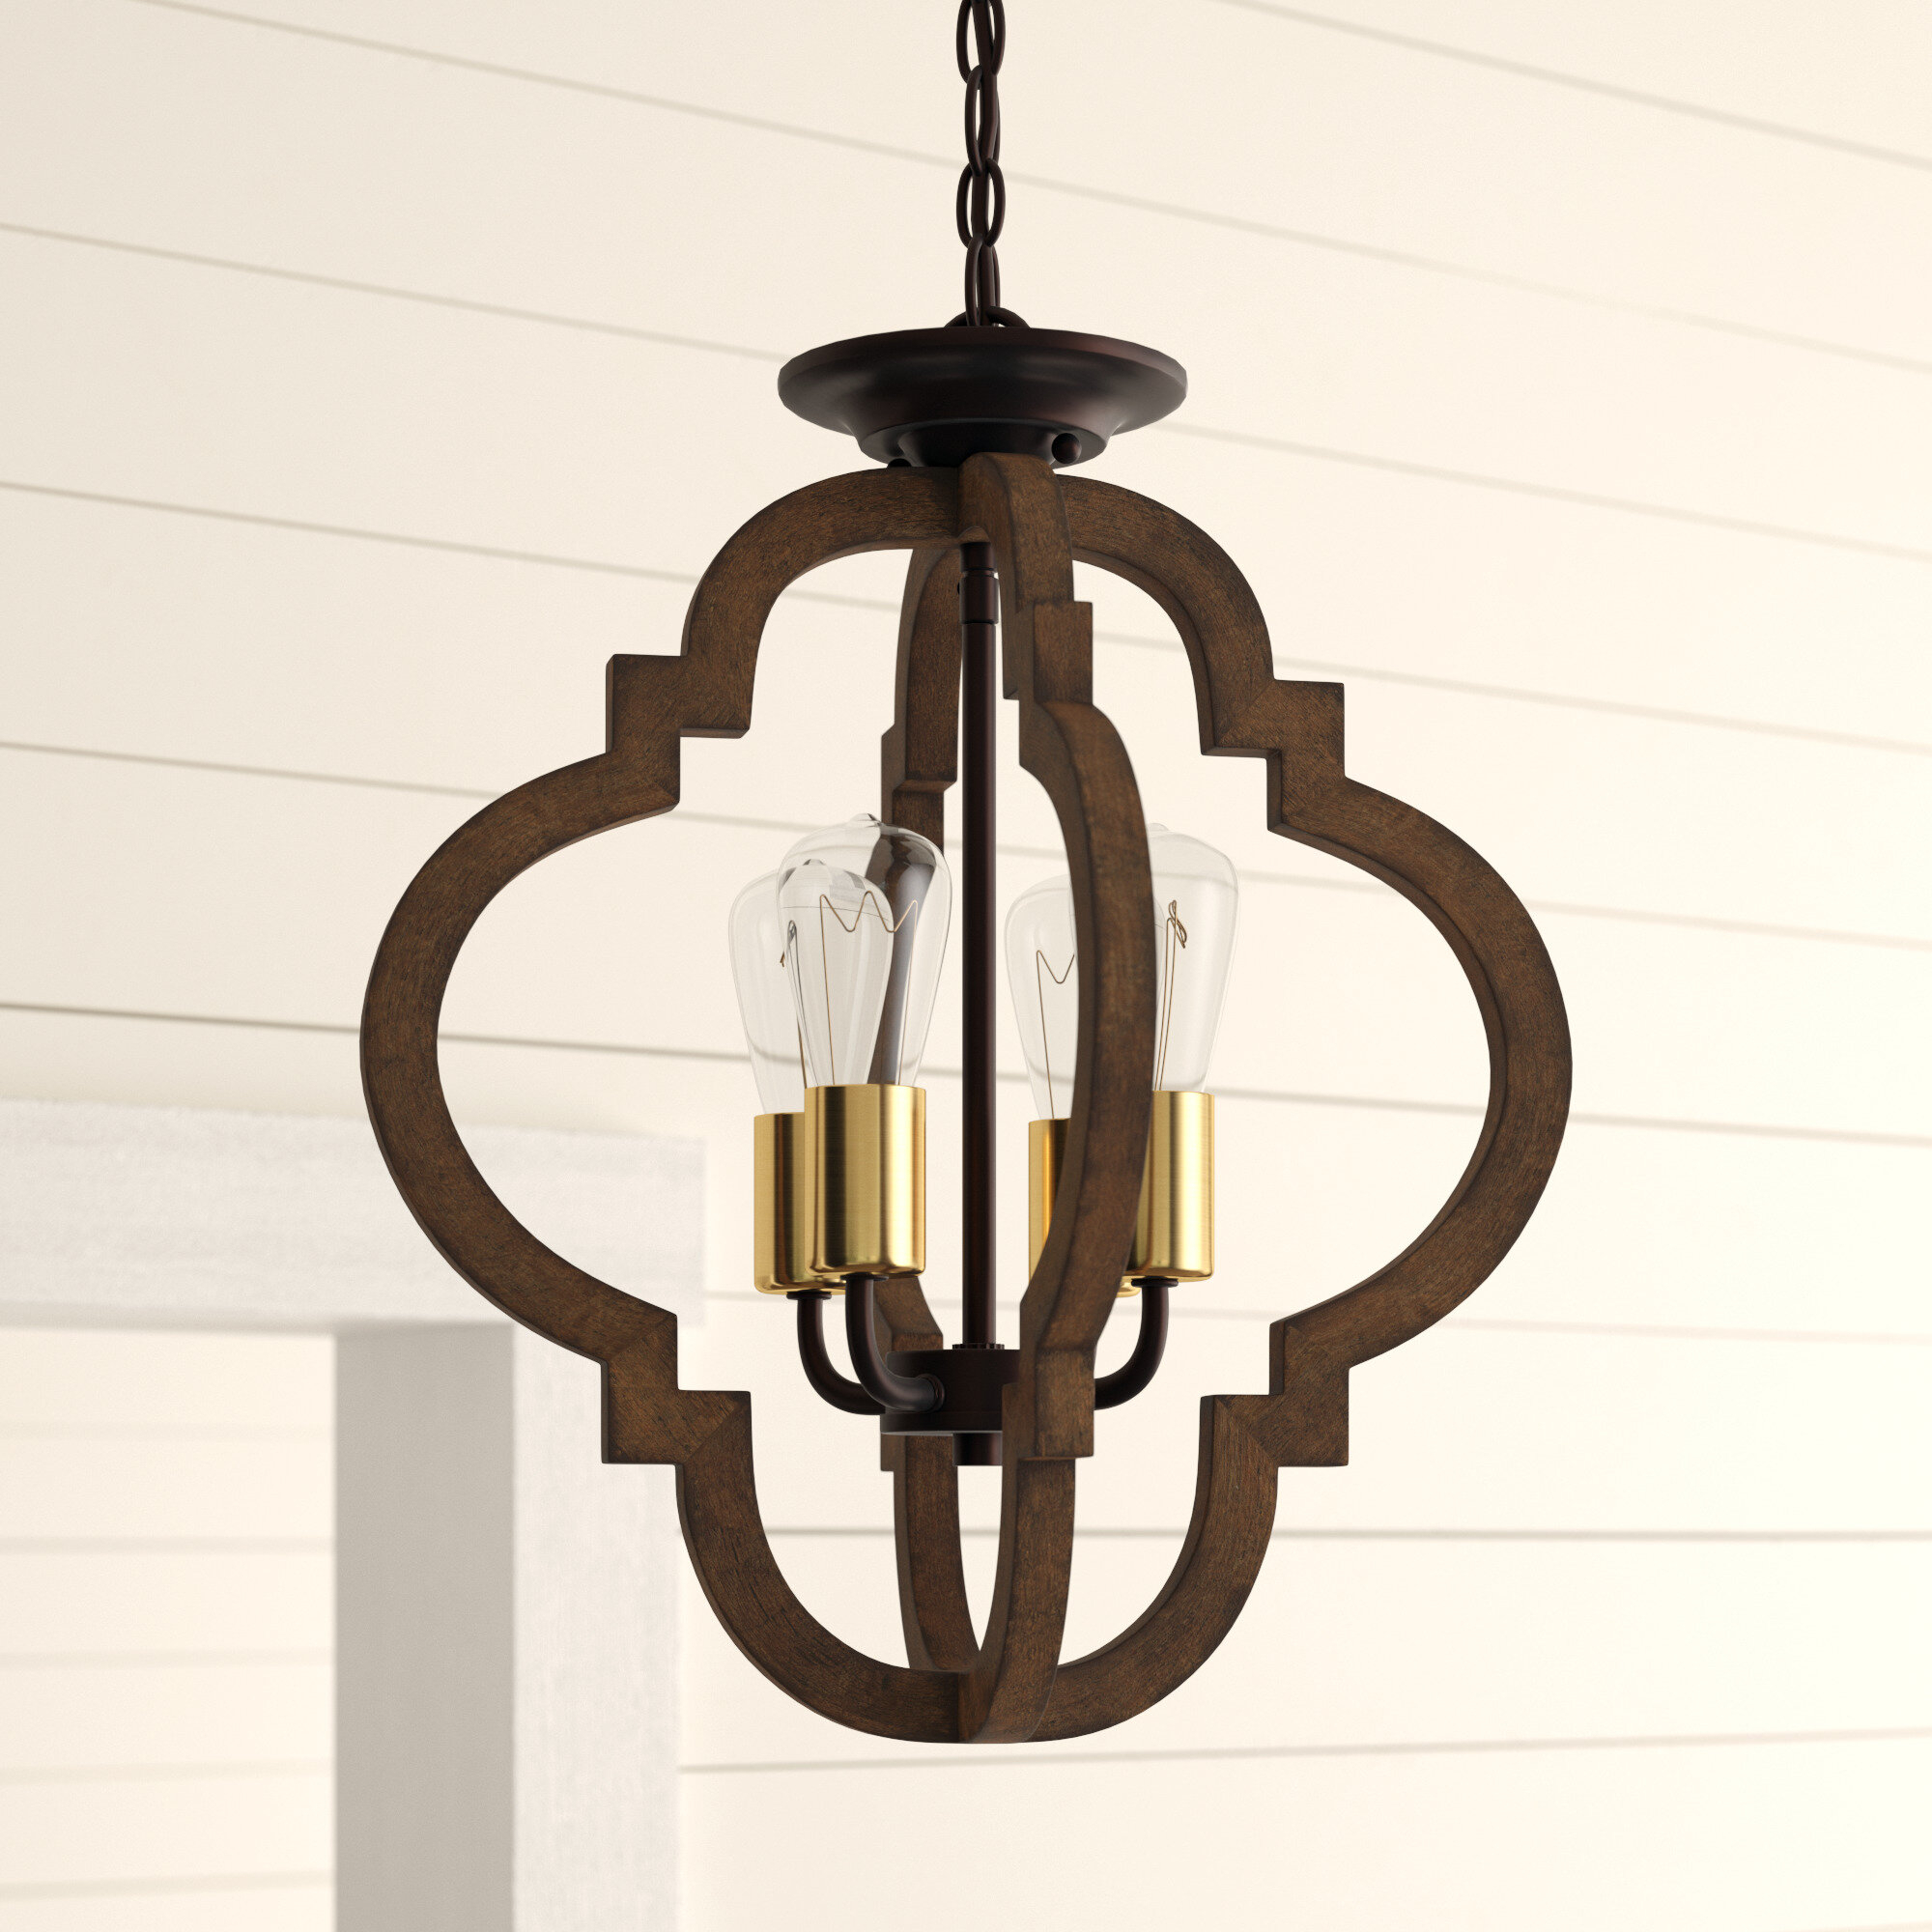 Kaycee 4 Light Geometric Chandelier Intended For Hendry 4 Light Globe Chandeliers (View 6 of 30)